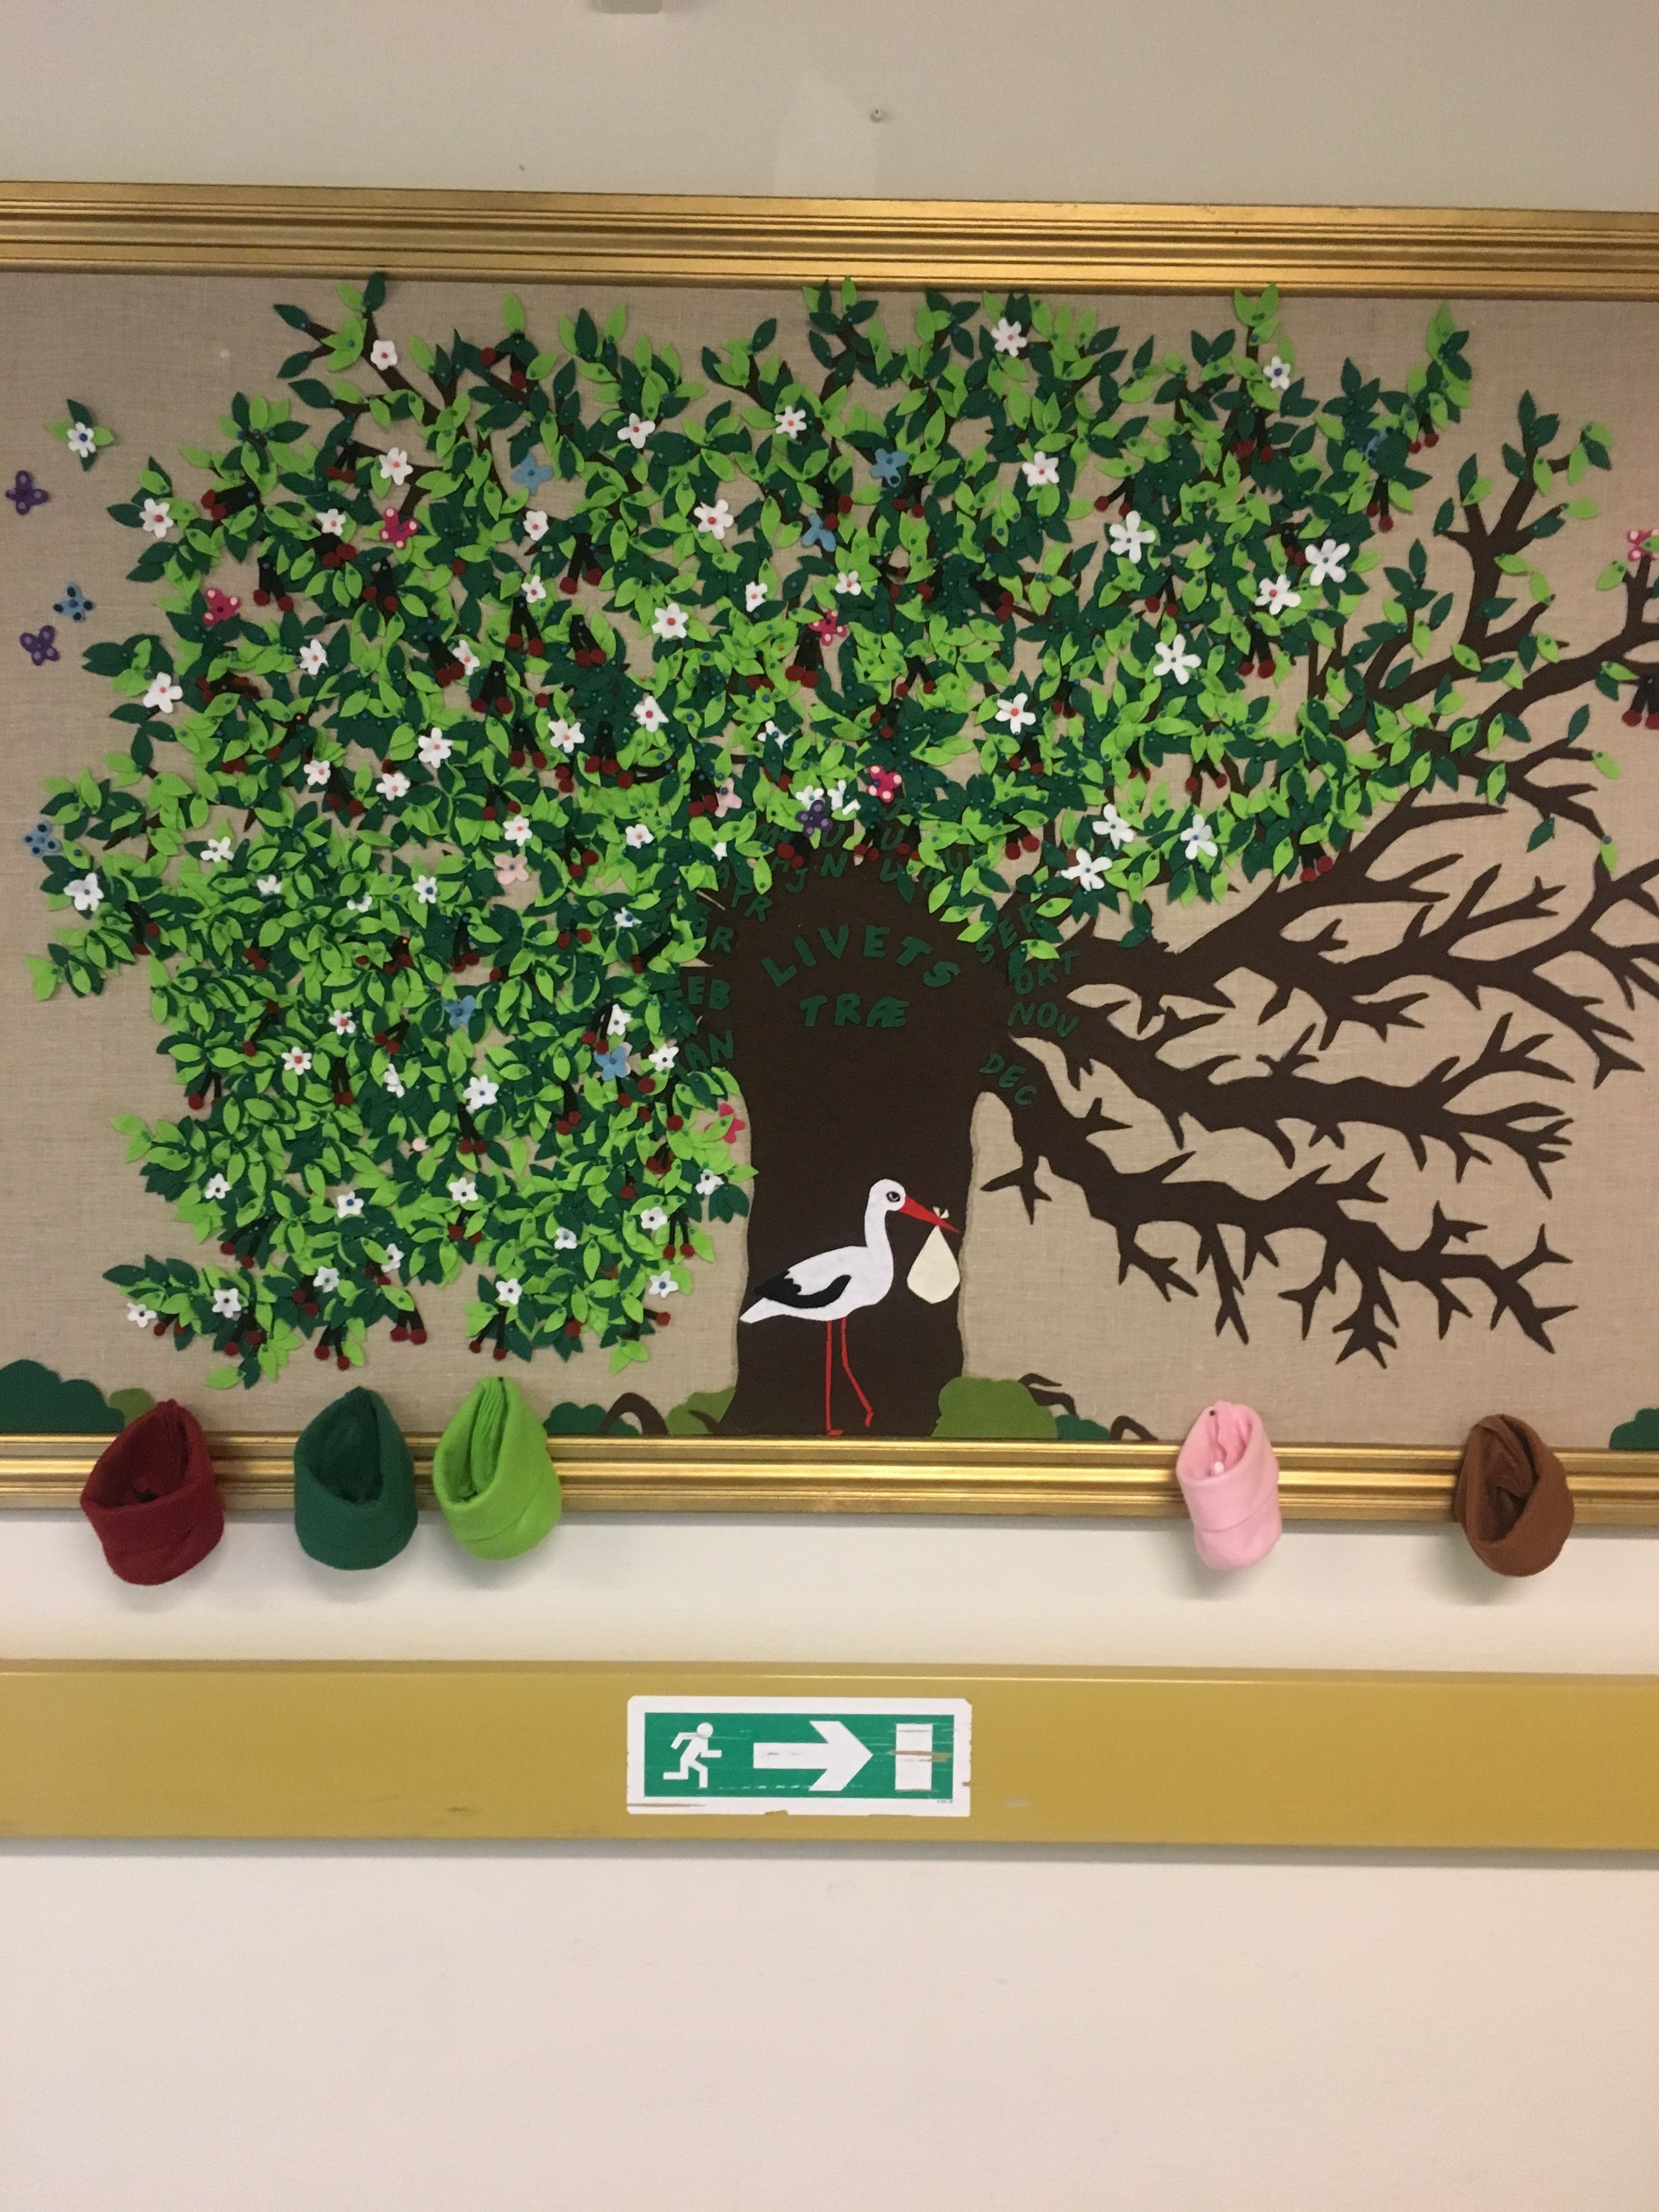 Pinboard in the birthing department. Every leaf represents a newborn child. For midwives, taking care of mothers babies are the number one priority. Everthing else is secondary.